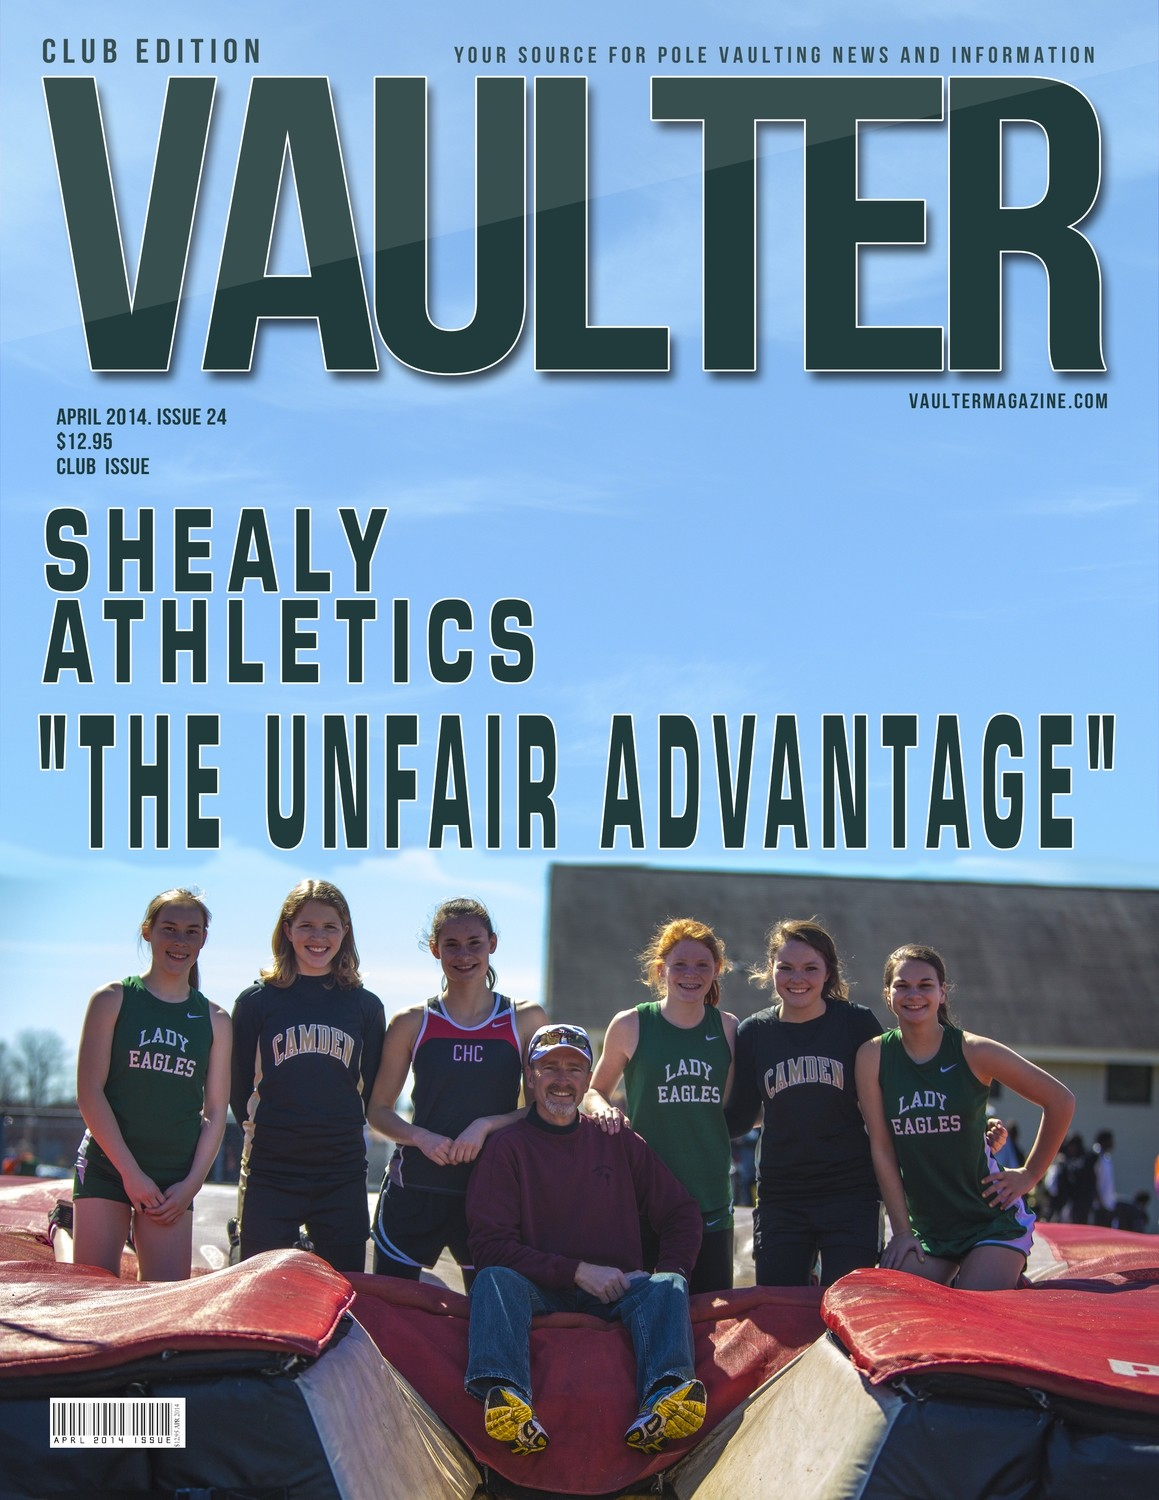 Buy a April Rusty Shealy Magazine - Get Poster for $20 - That's $5 Off